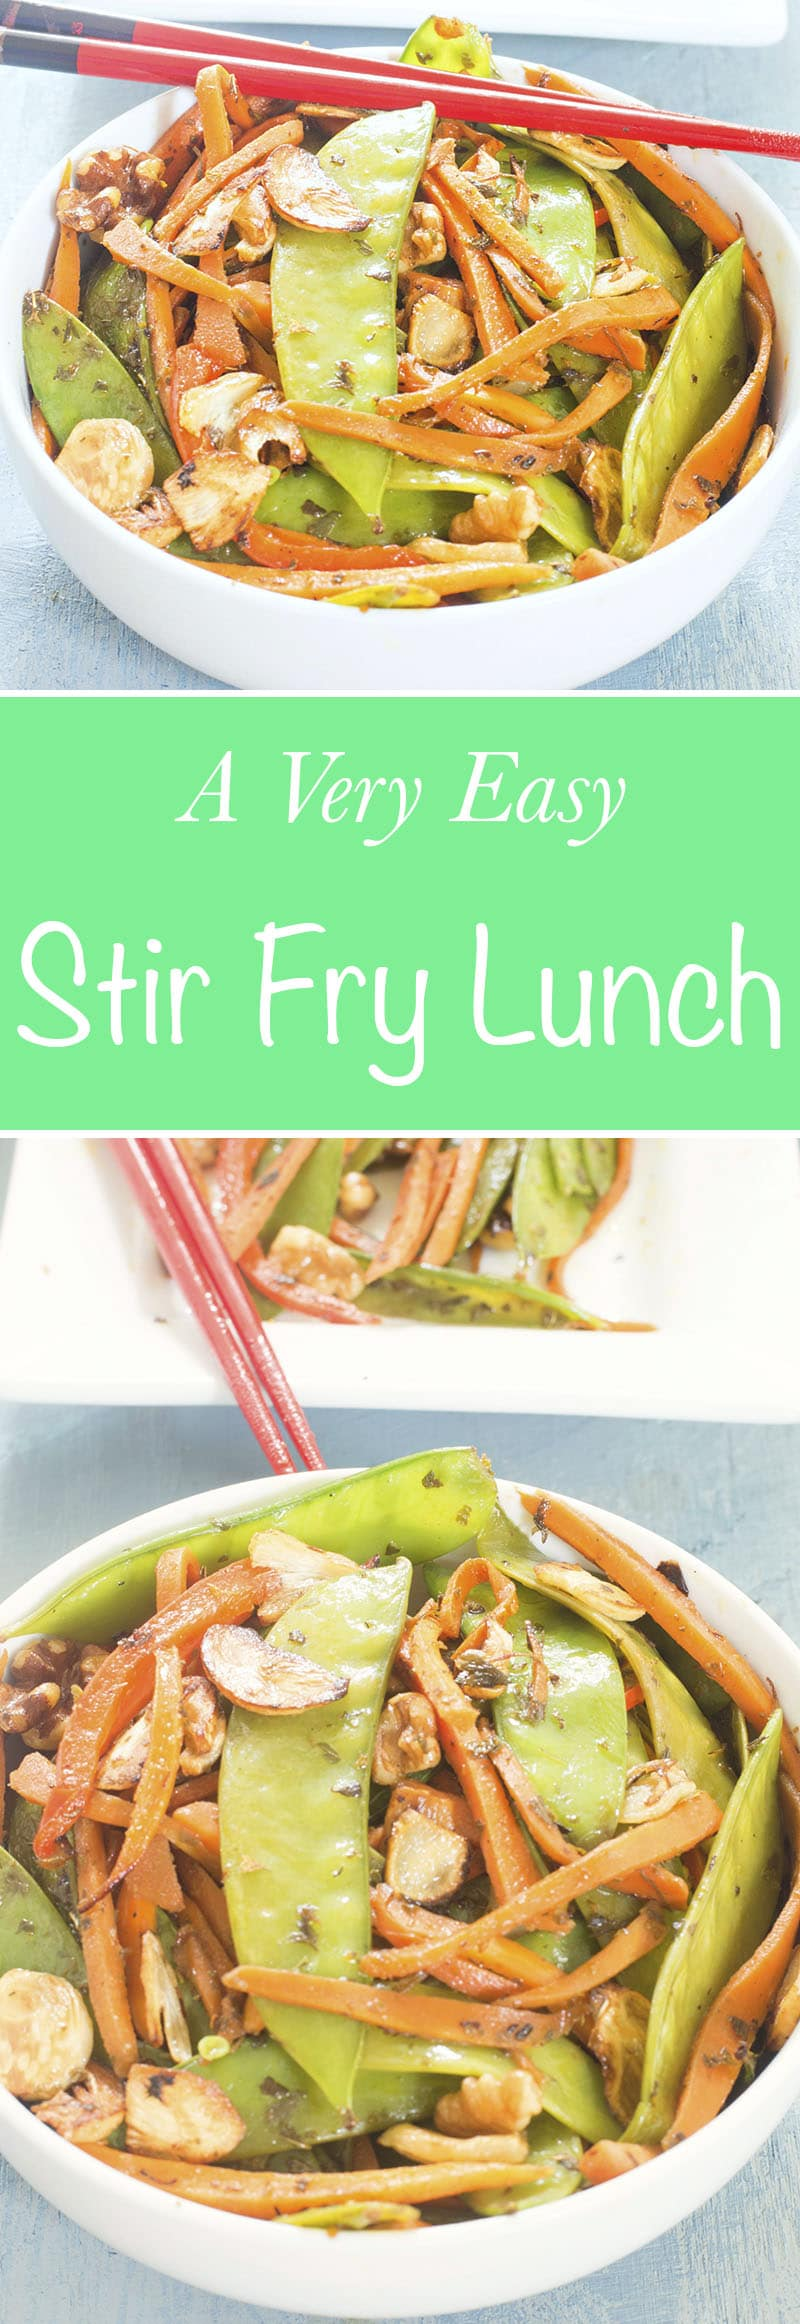 Stir Fry Snow Peas With Carrots with Asian flavors. Topped with walnuts for a yummy crunch. This is perfect lunch meal or a side dish. Vegan / Vegetarian